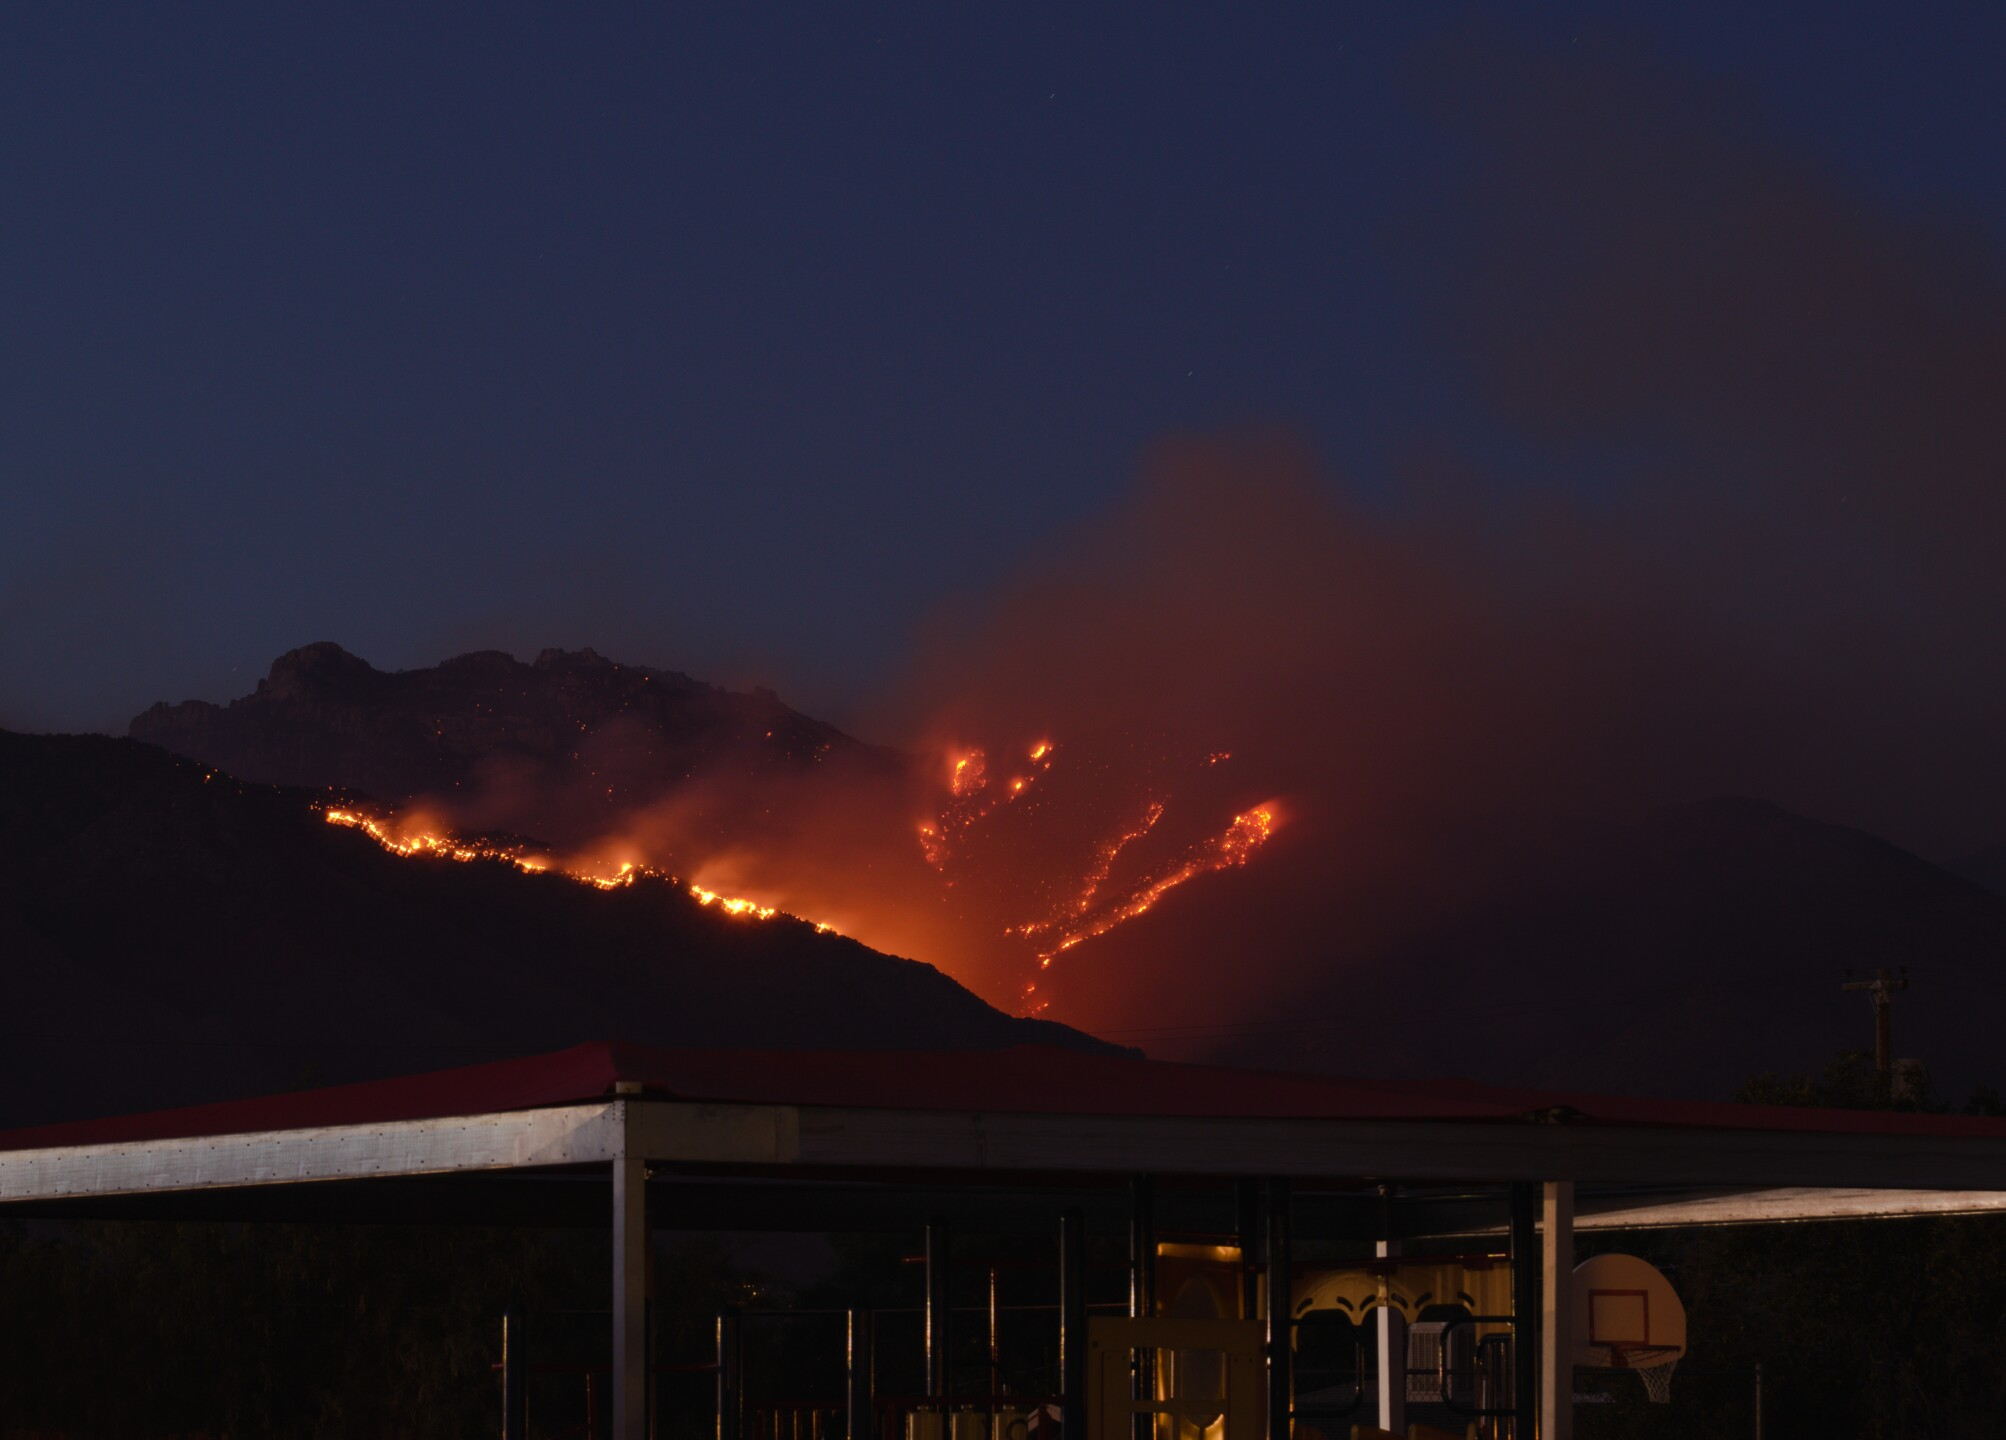 The Bighorn Fire as seen from next door to Caroline Lecaplain's home